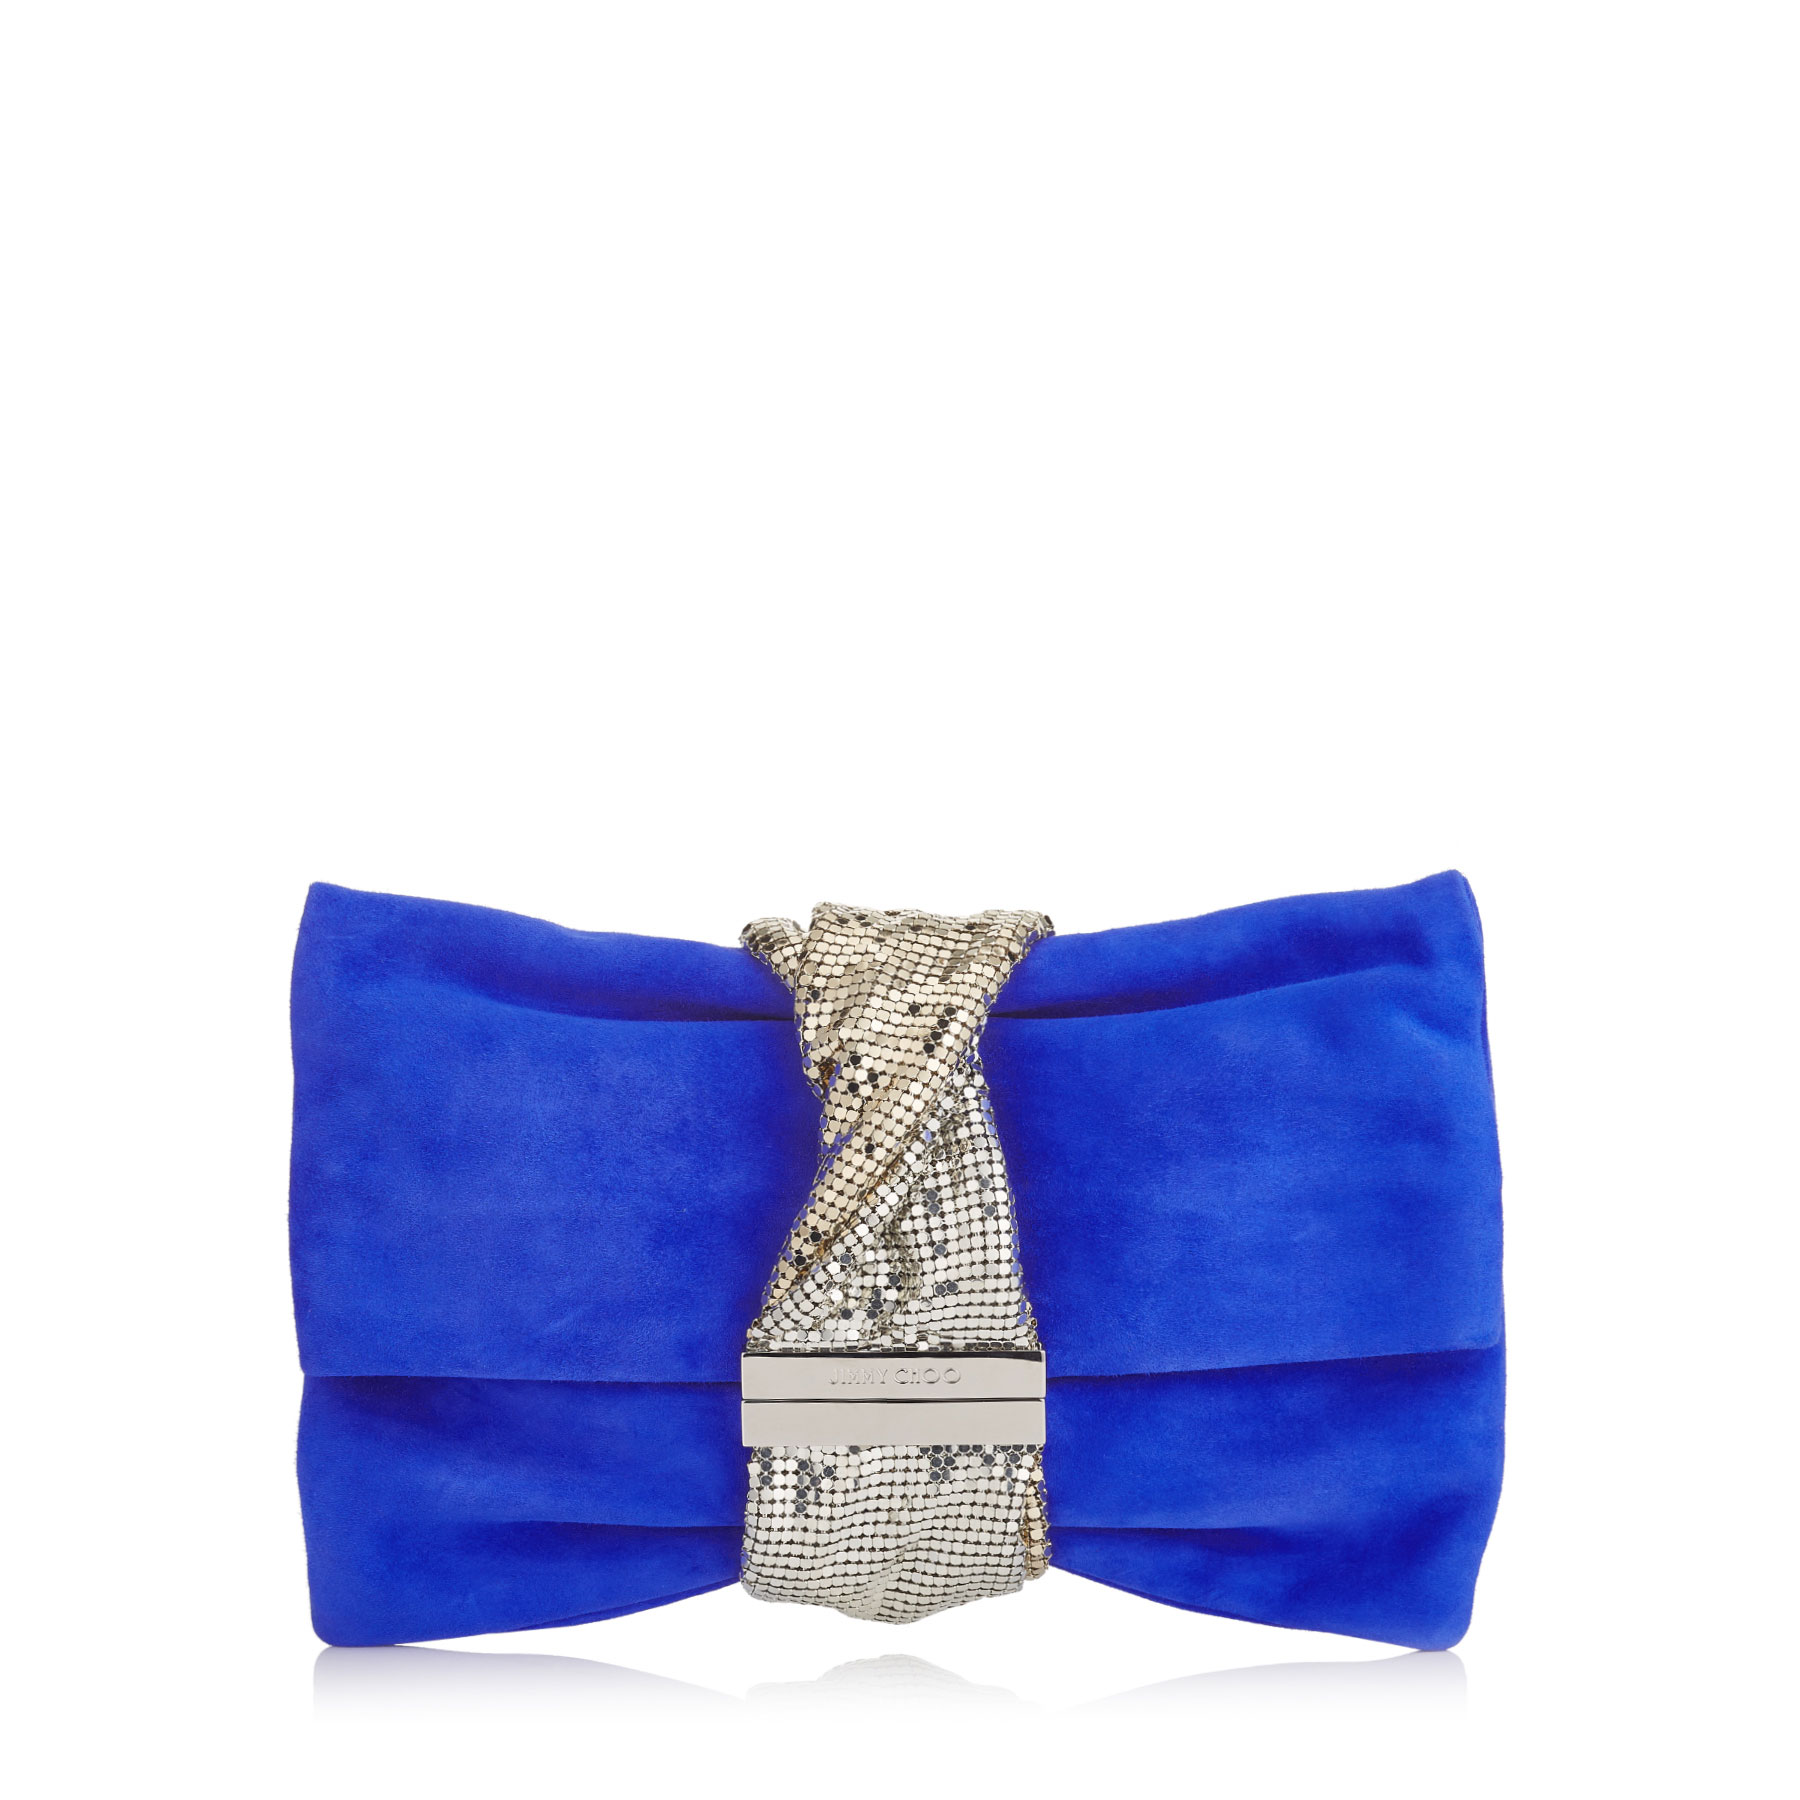 CHANDRA/M Cobalt Suede Clutch Bag with Chainmail Bracelet